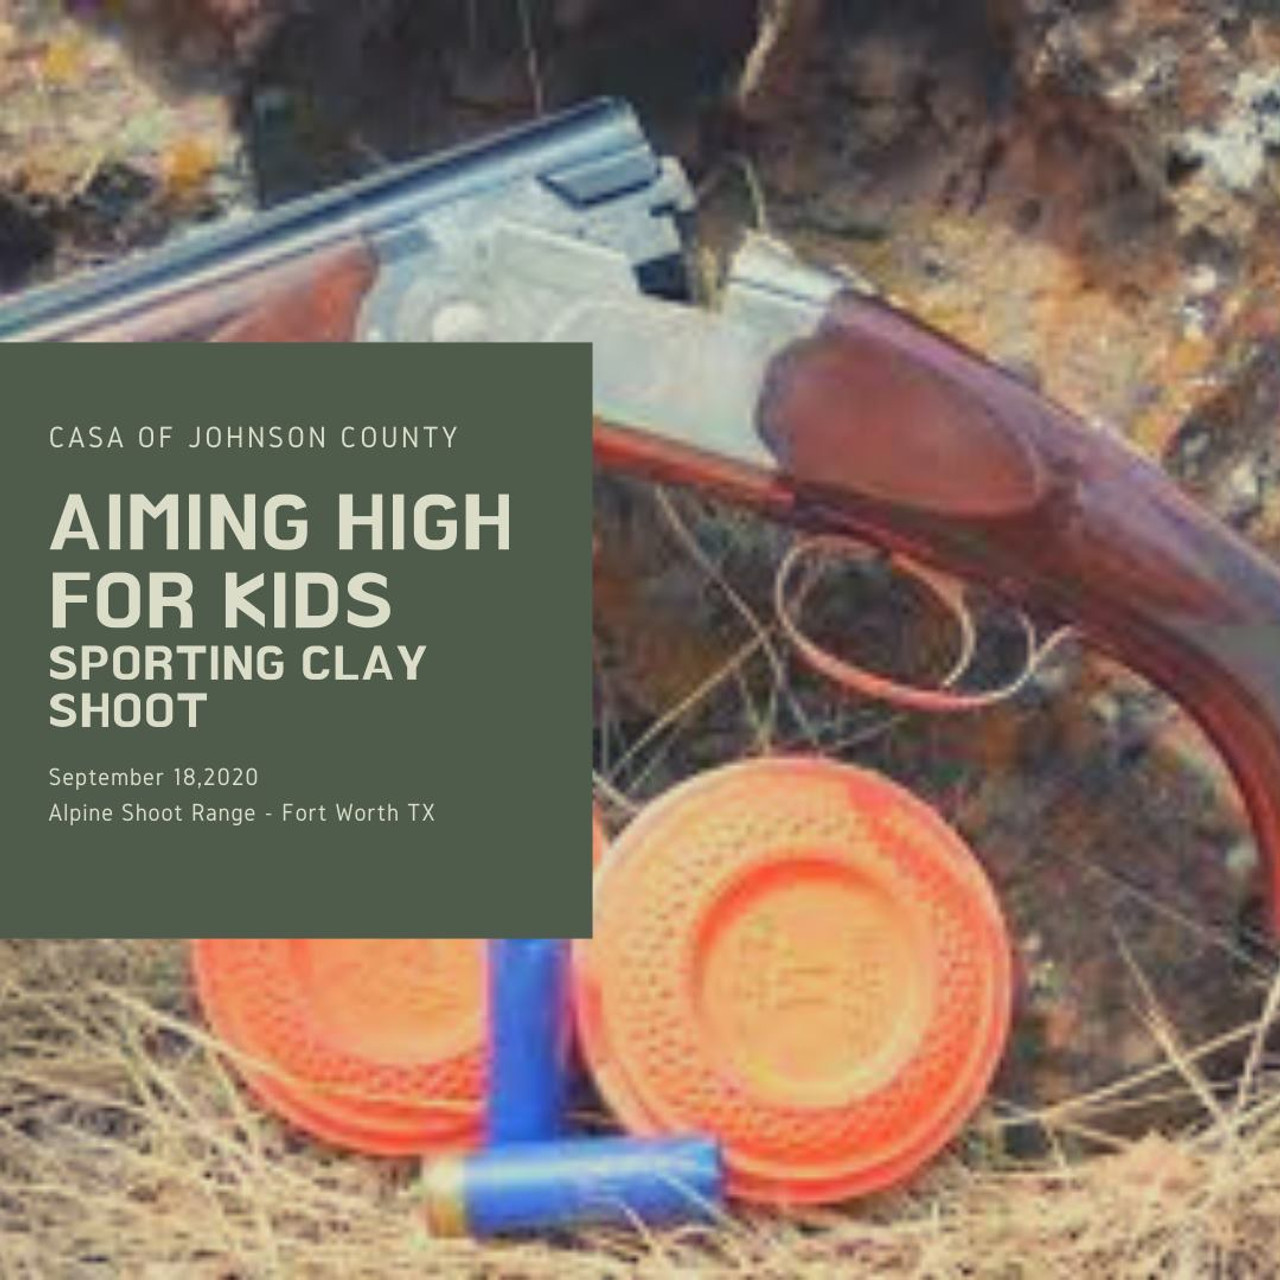 17th Annual Aiming High For Kids Sporting Clay Shoot - Sept 18, 2020